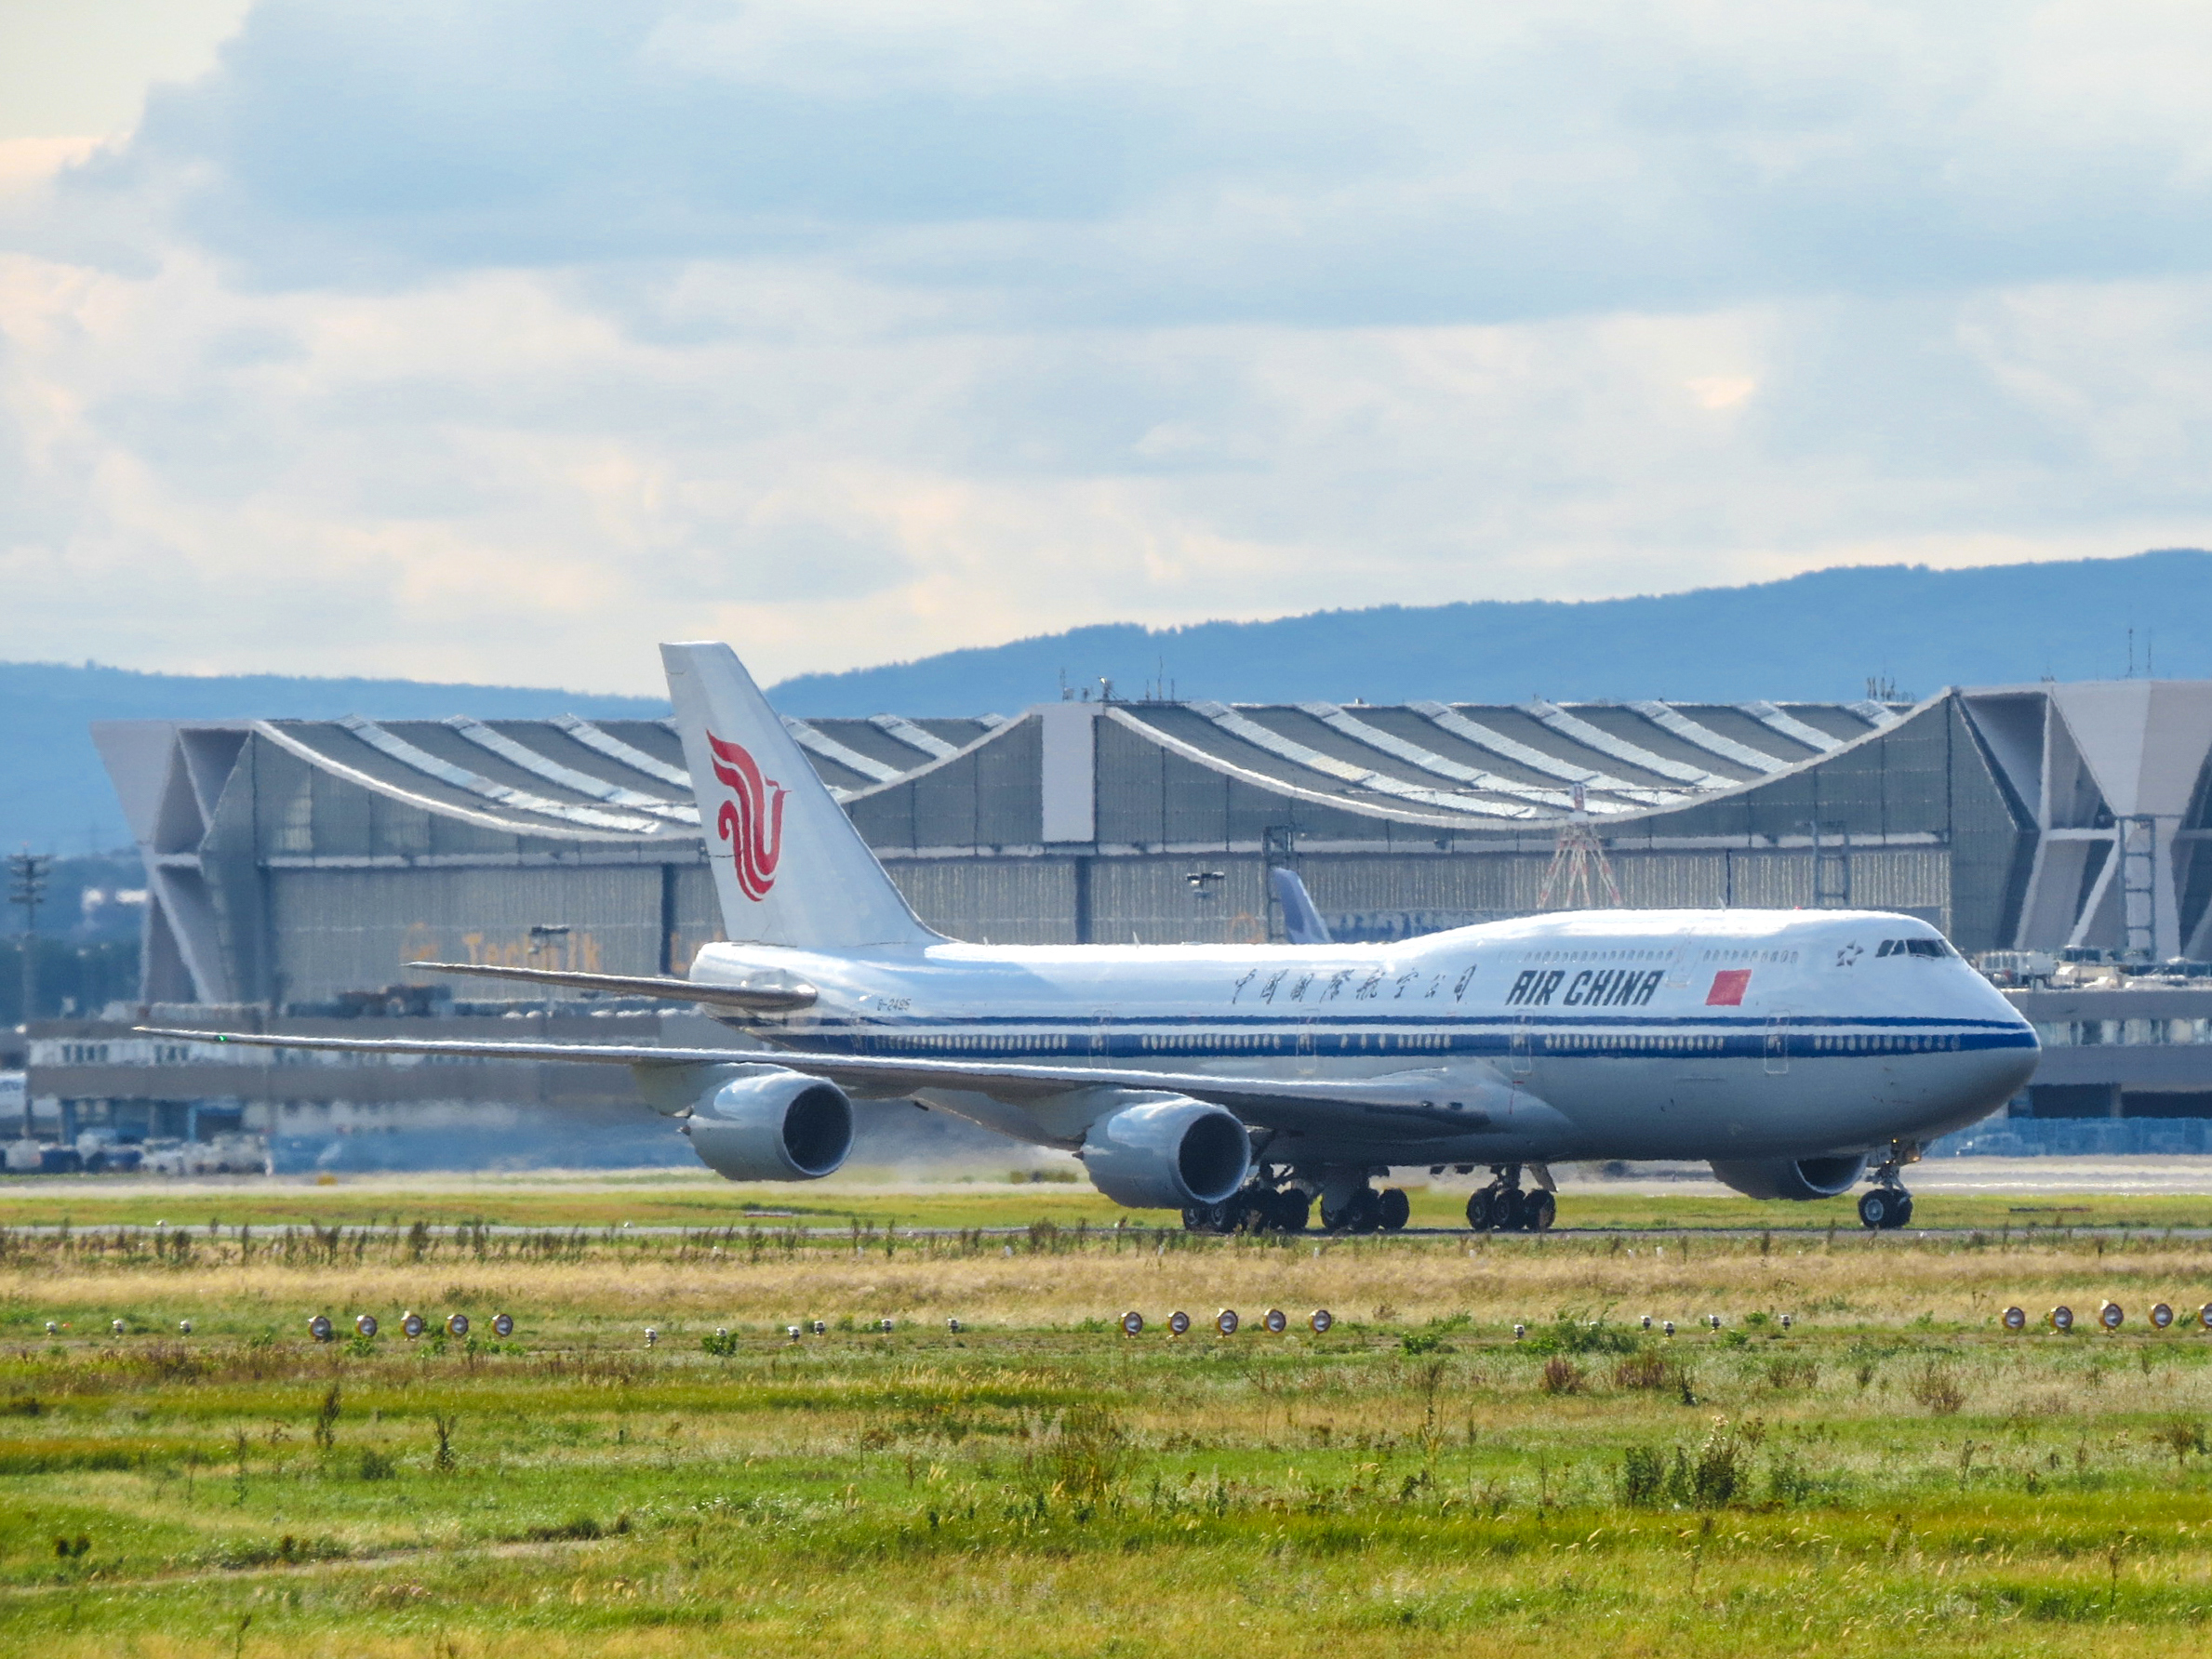 File:Air China, B-2485, Boeing 747-8 - FRA (